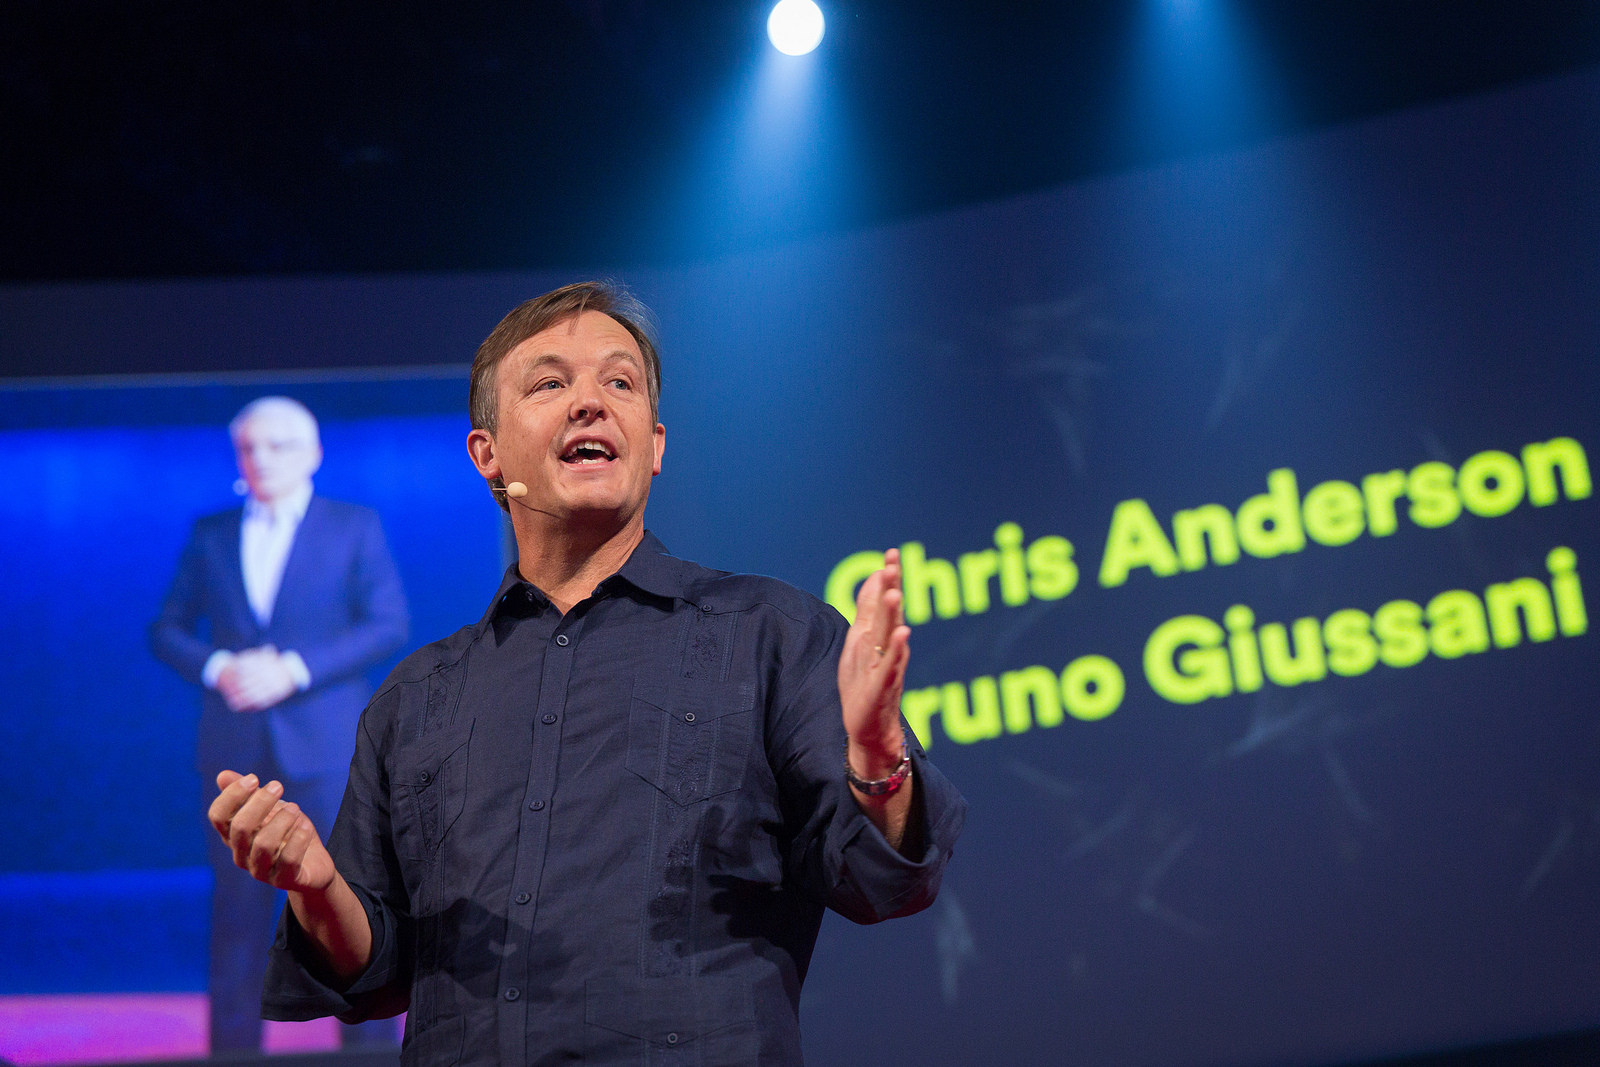 Chris Anderson and Bruno Gussani hosted TEDGlobal 2014. Photo: James Duncan Davison